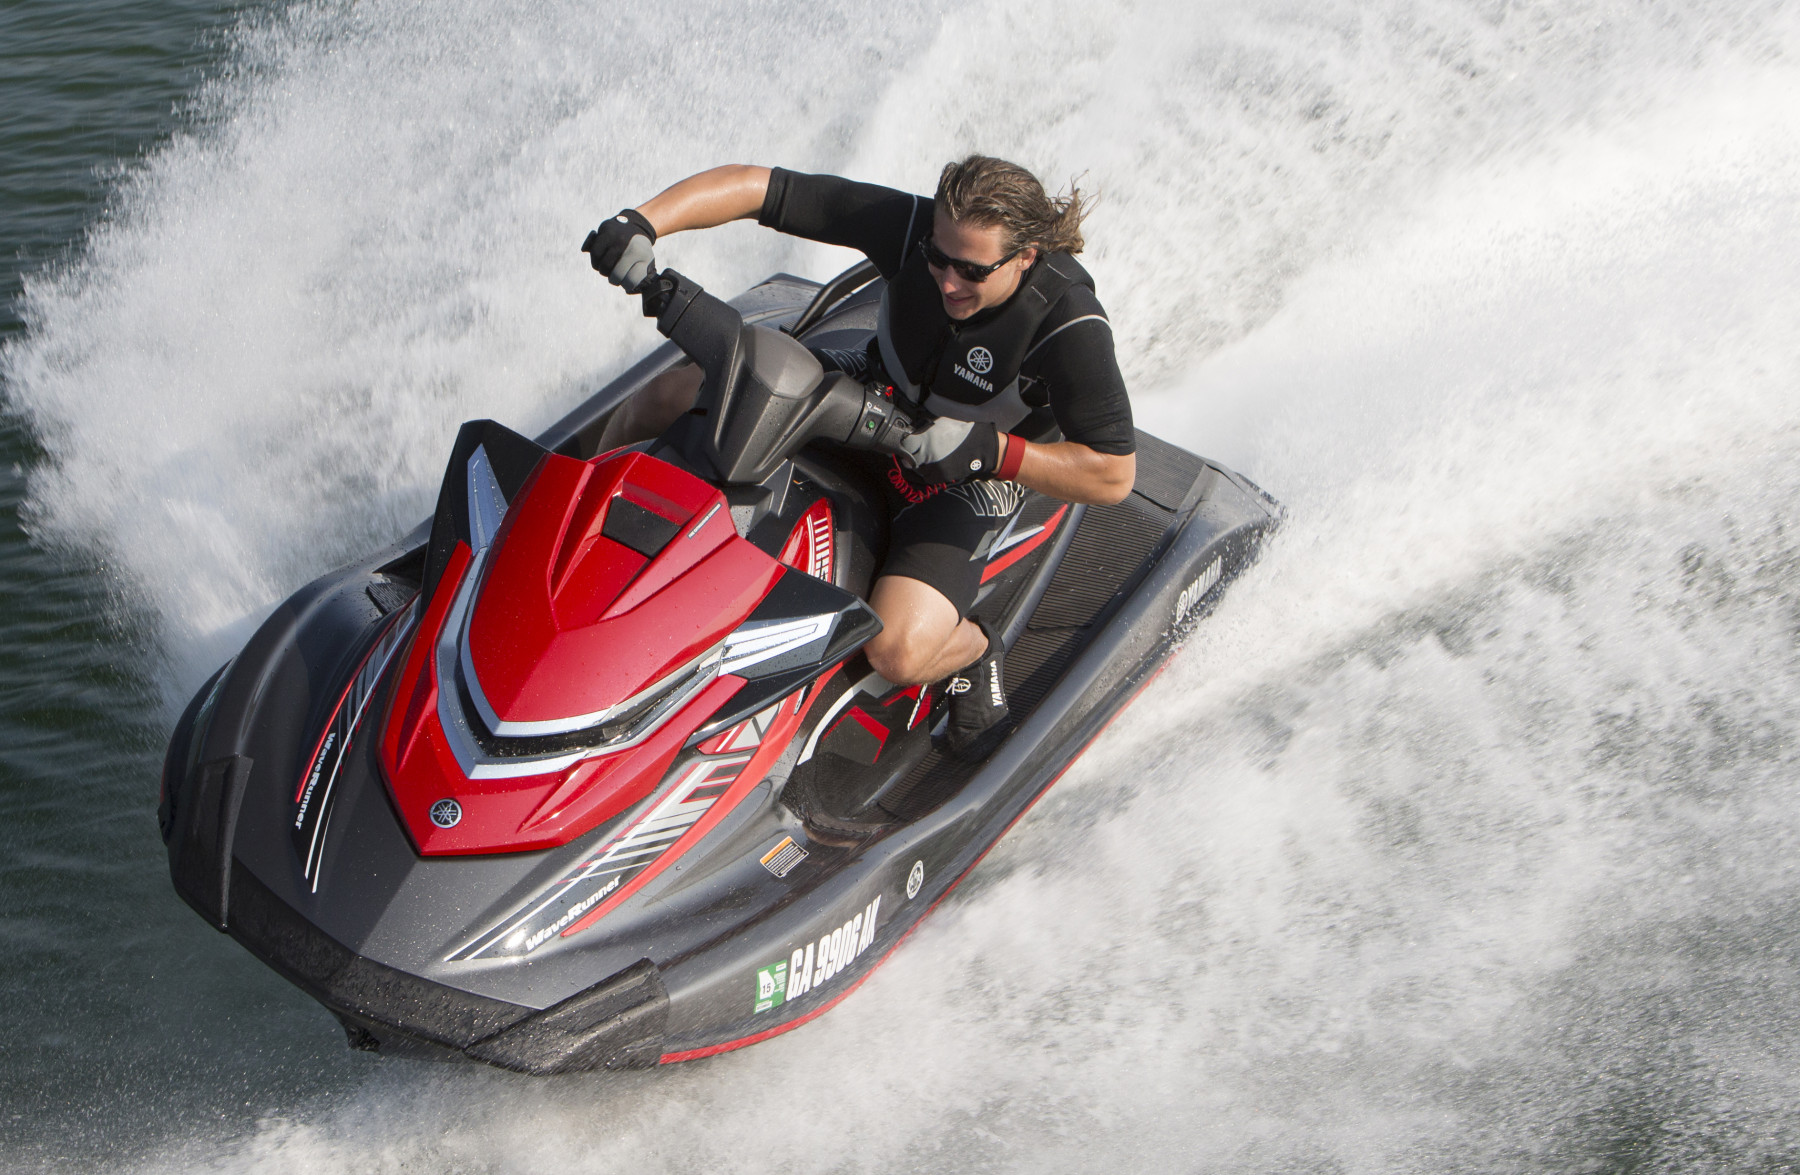 Gallery: Introducing The 2016 Yamaha WaveRunner Lineup